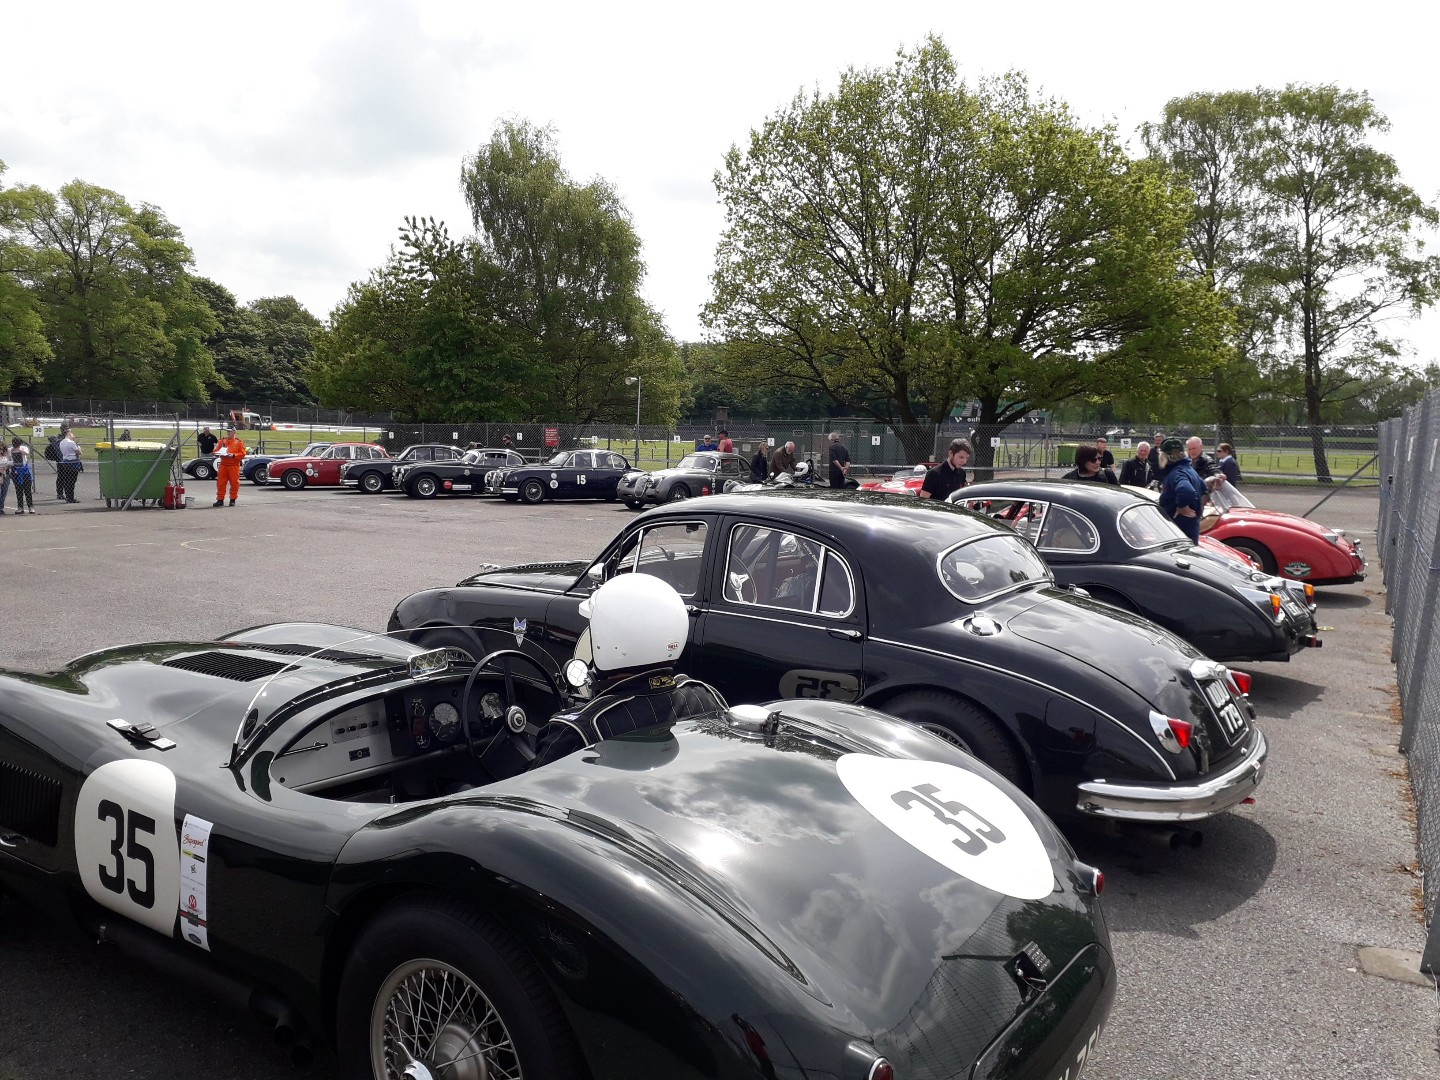 180512_Oulton_50's line up_AReed.jpg